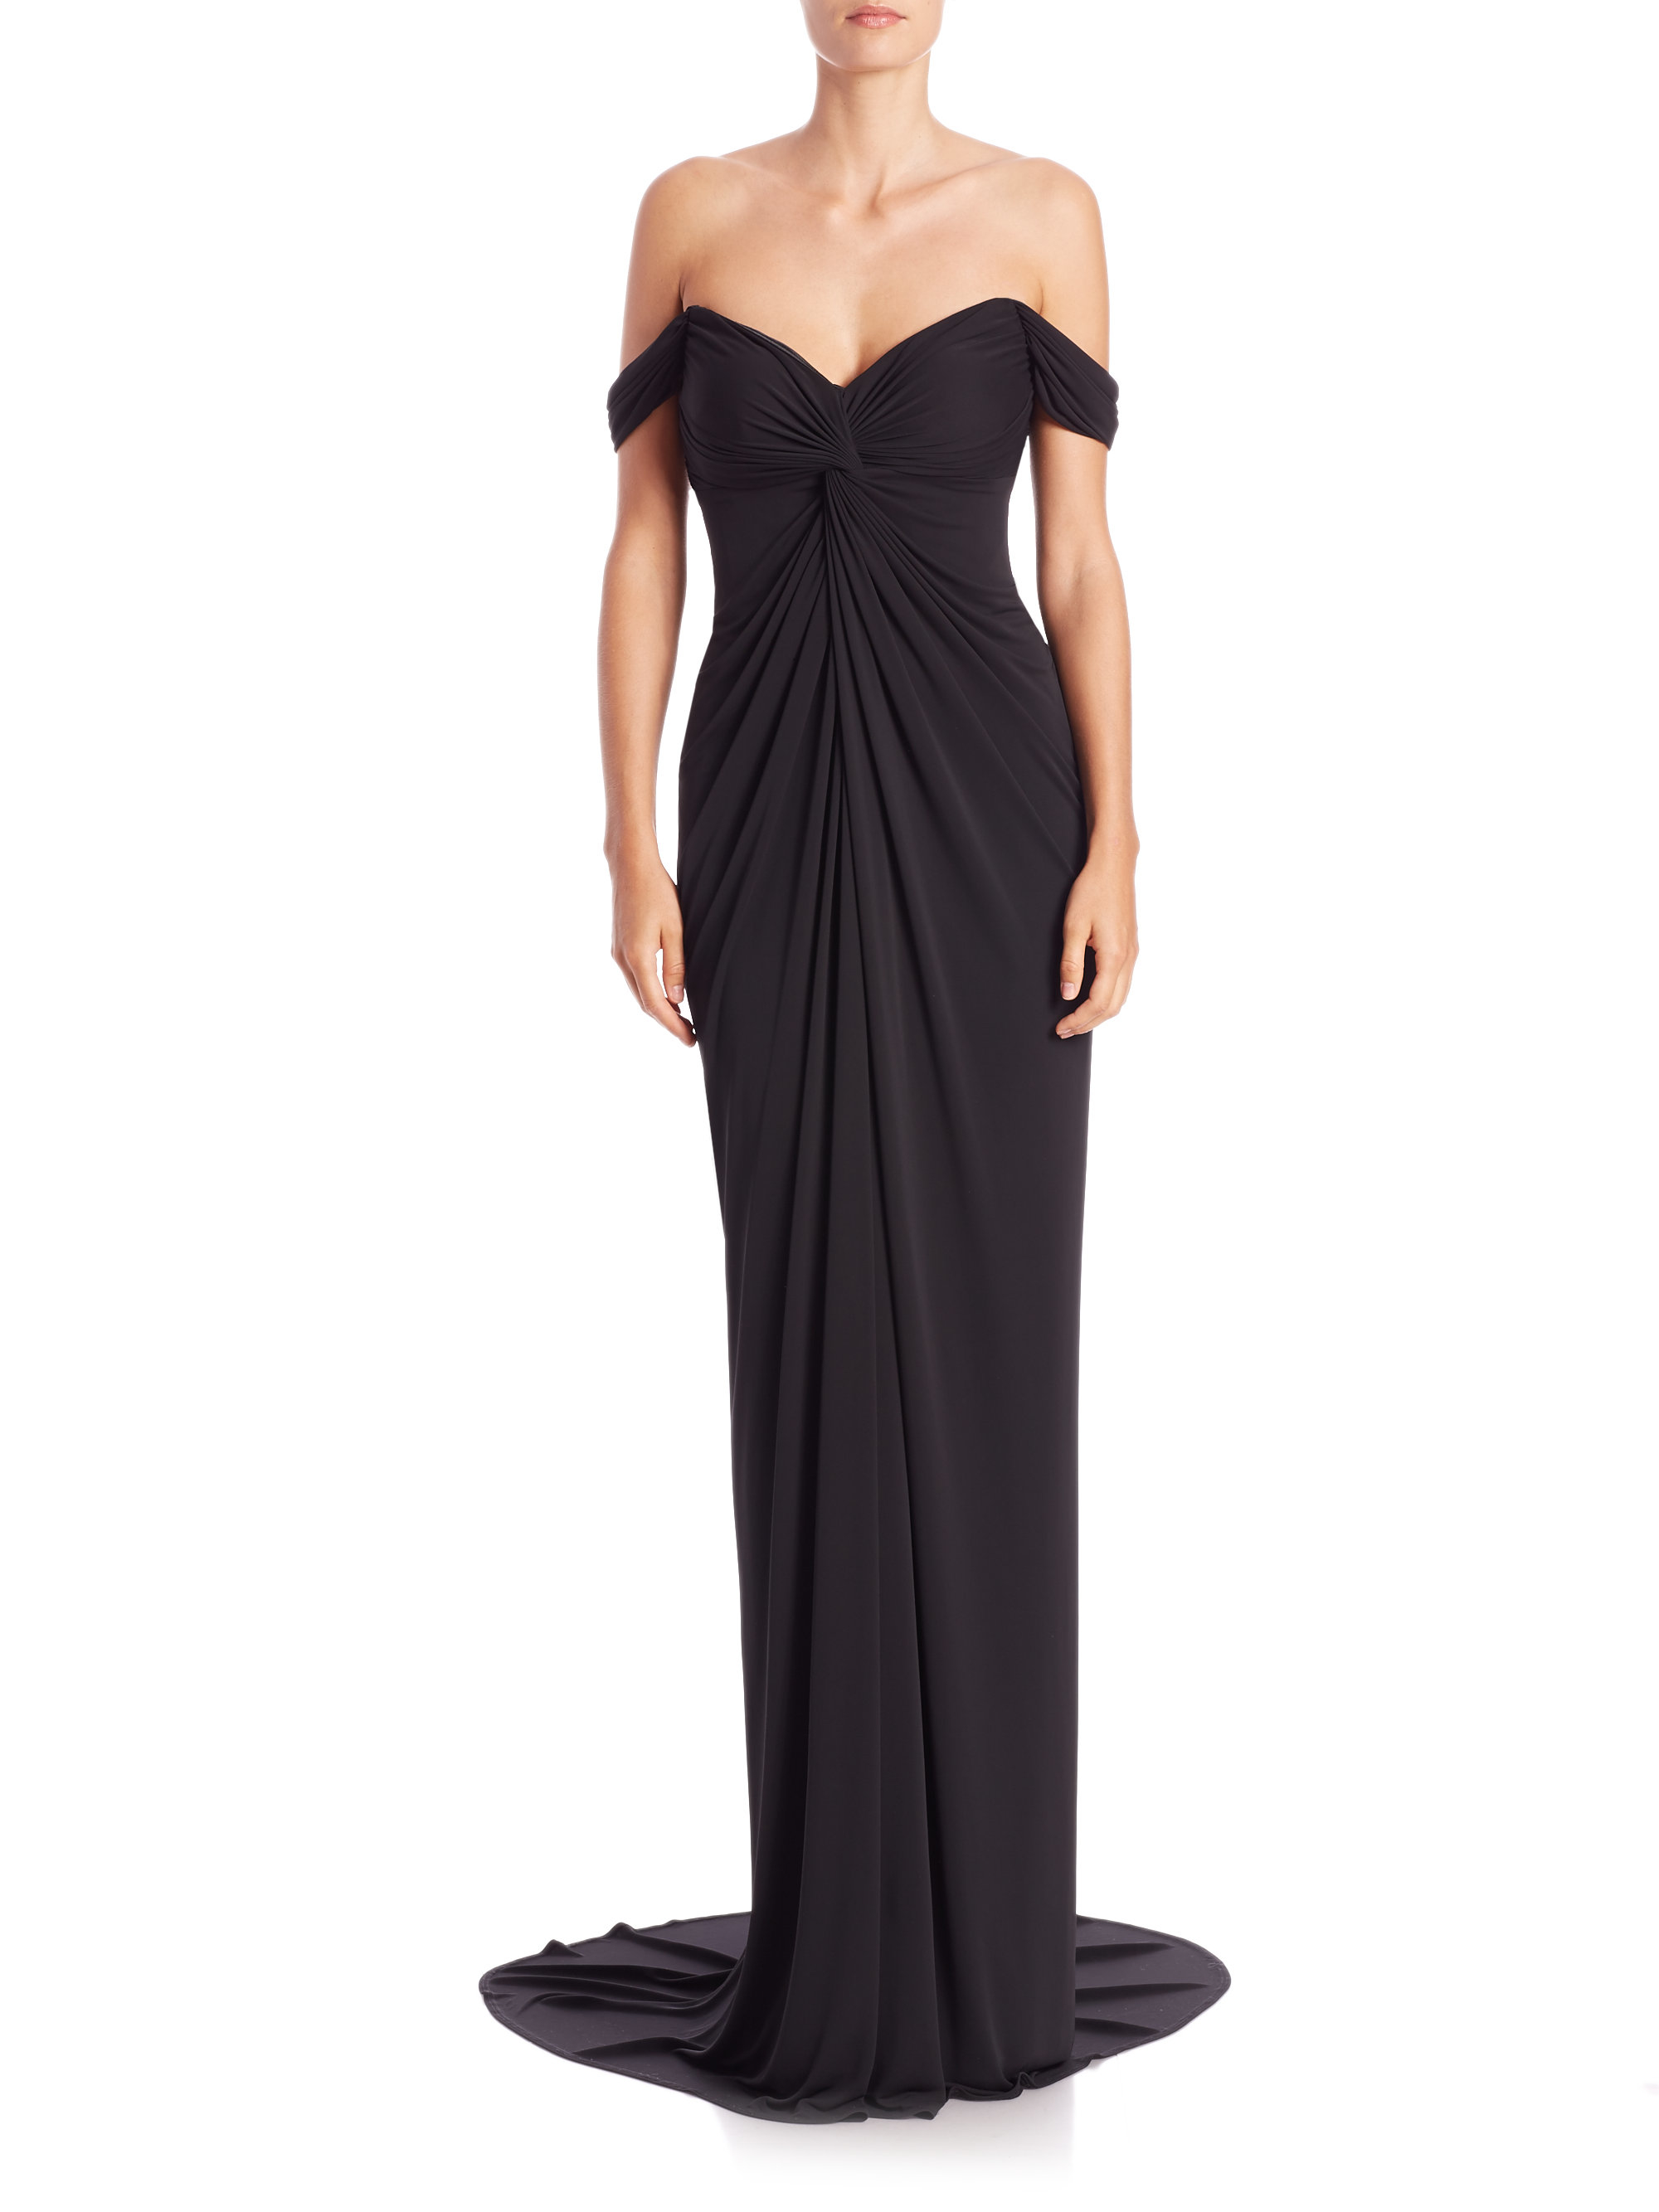 09735a58b686 David Meister Draped Jersey Off-the-shoulder Gown in Black - Lyst